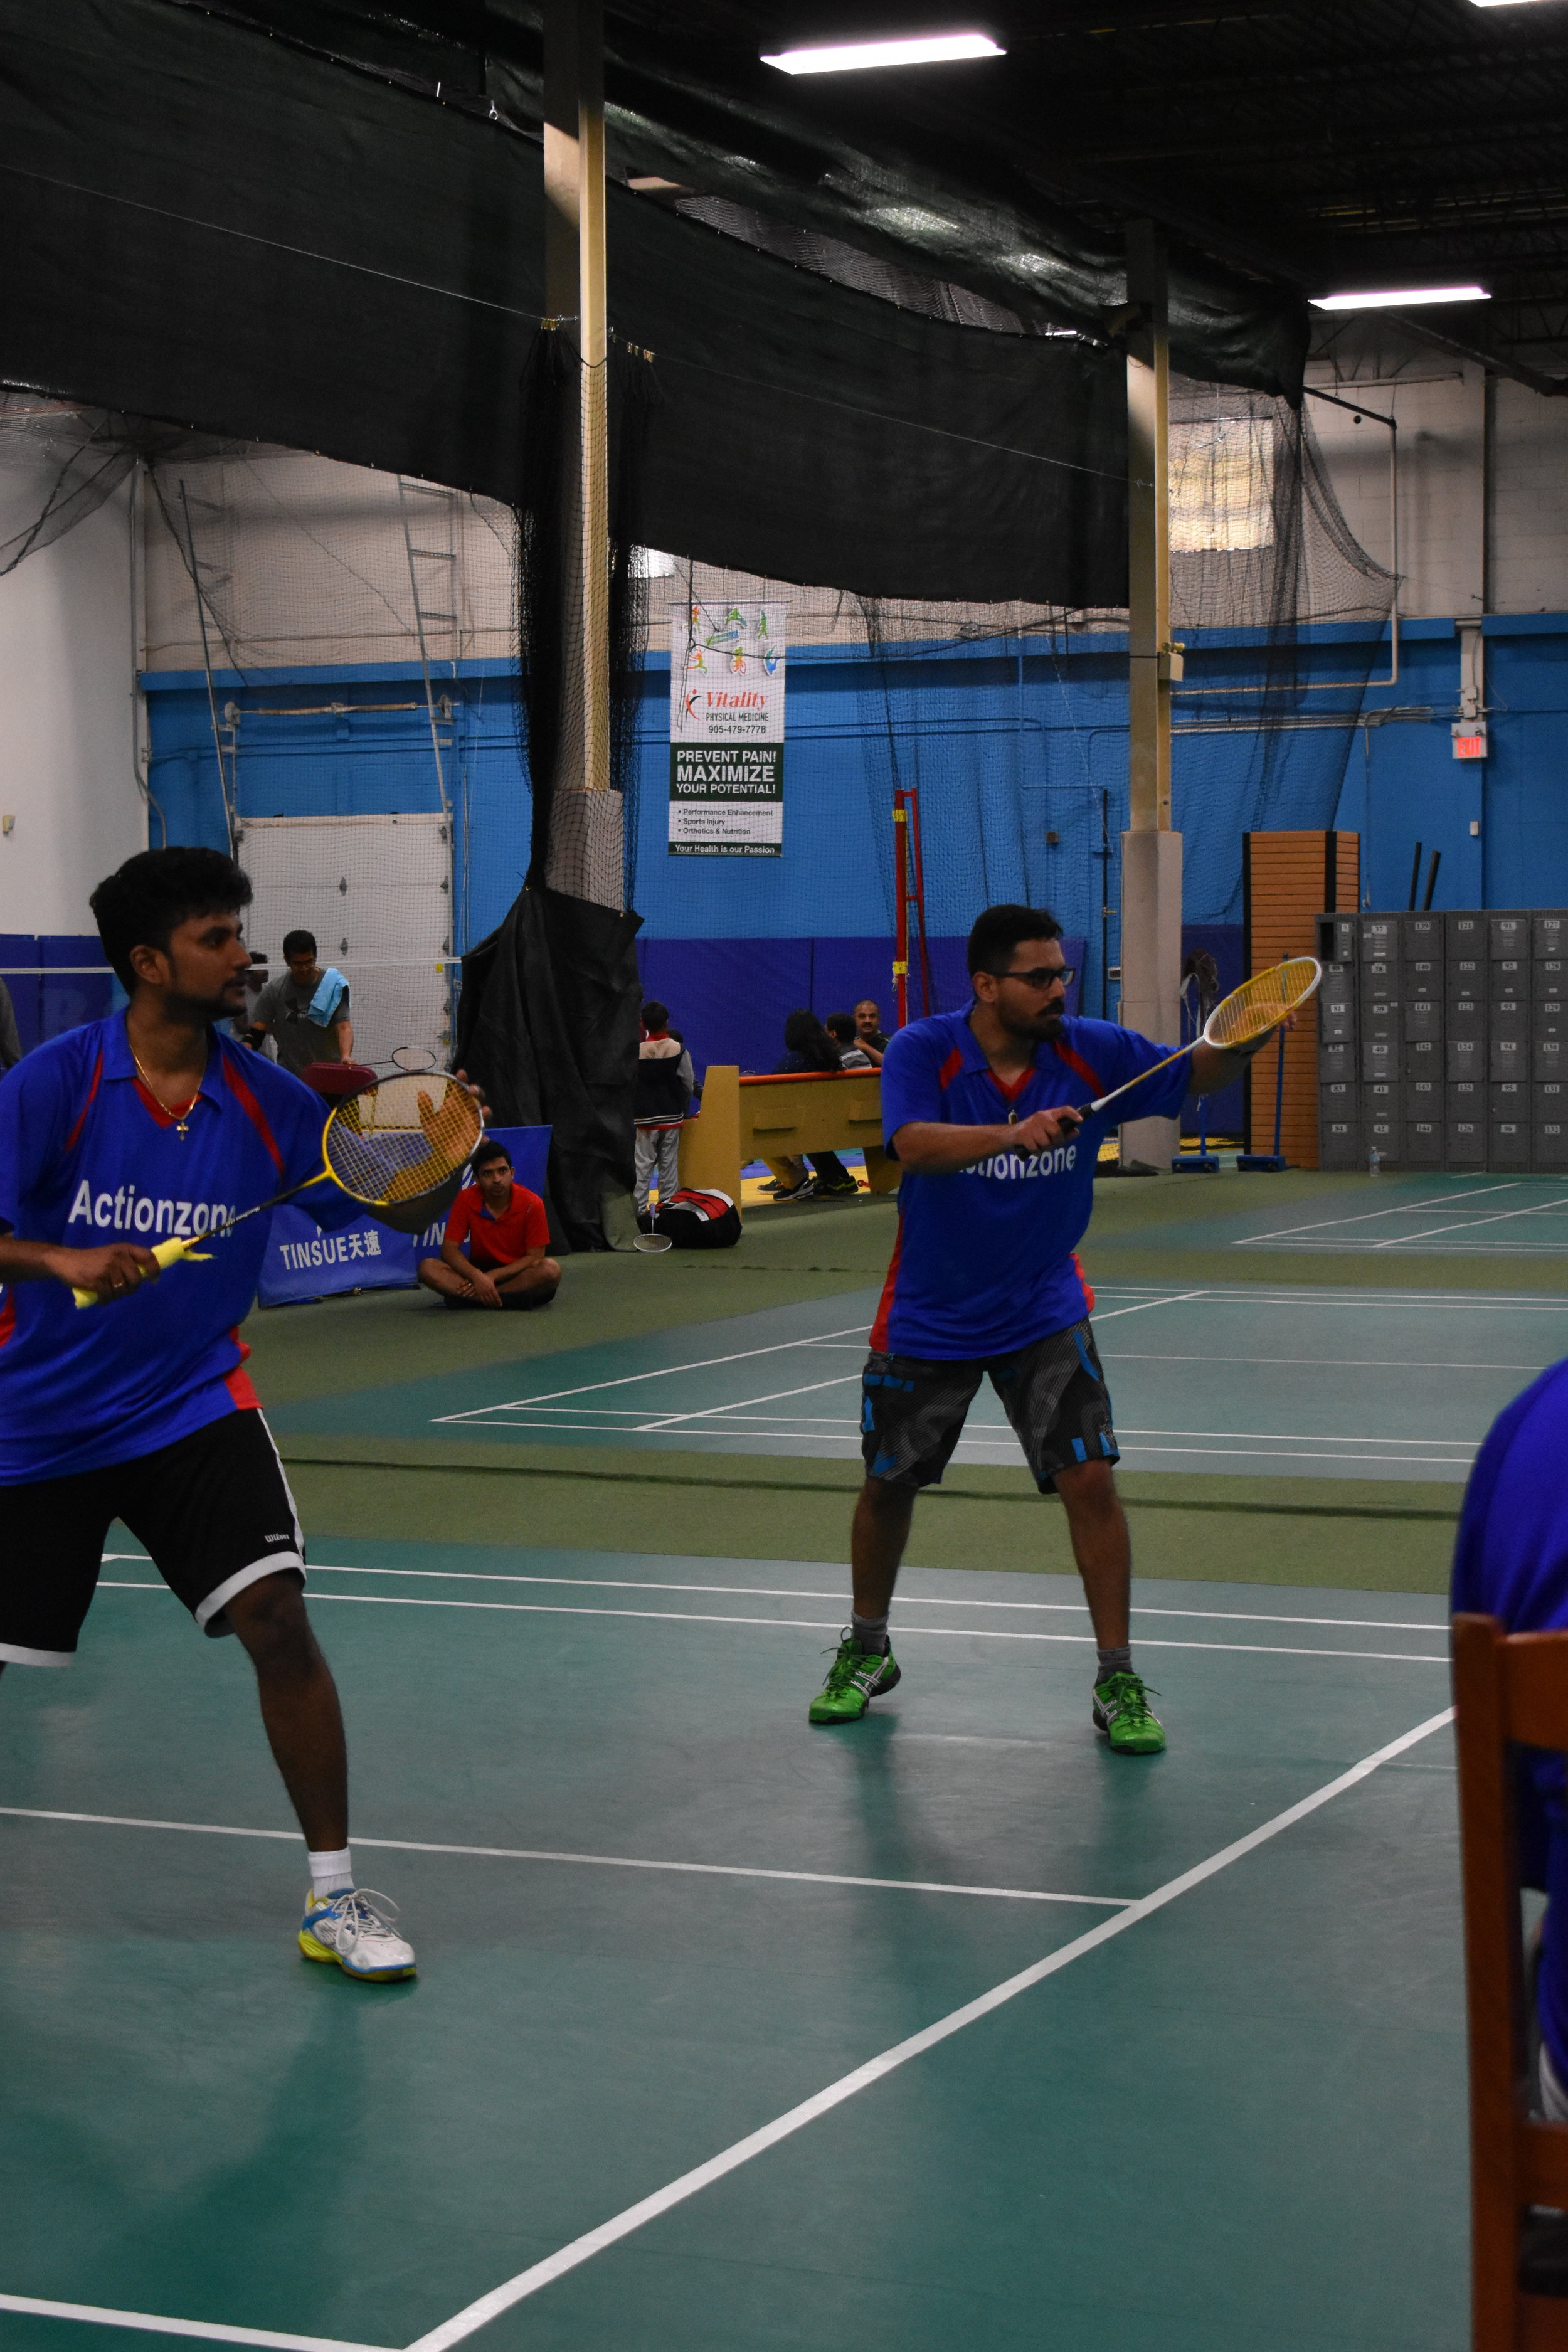 Champions of Actionzone Badminton Tournament